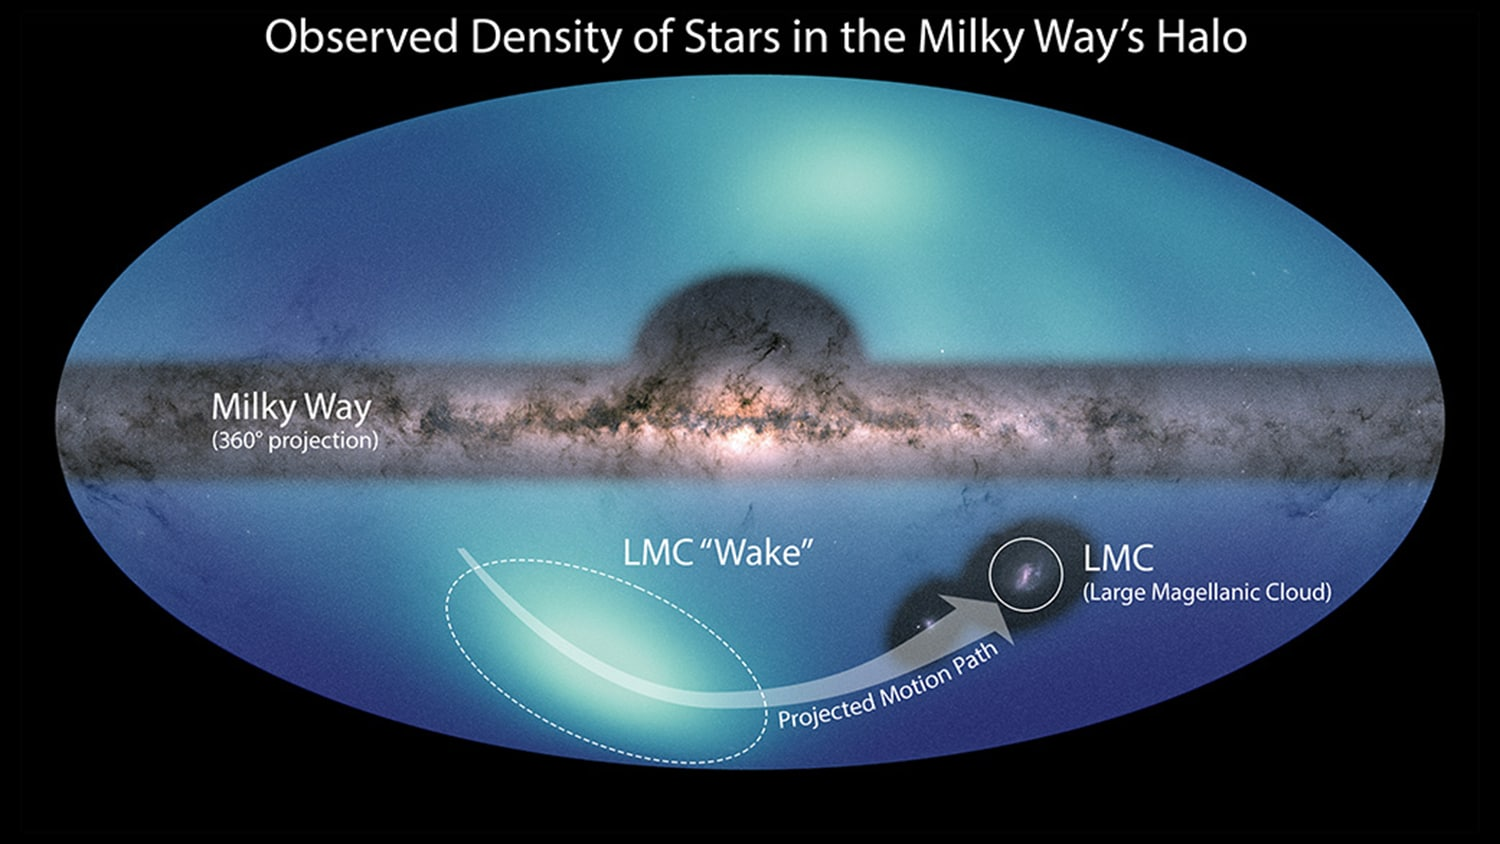 The smaller structure is a wake created by the LMC's motion